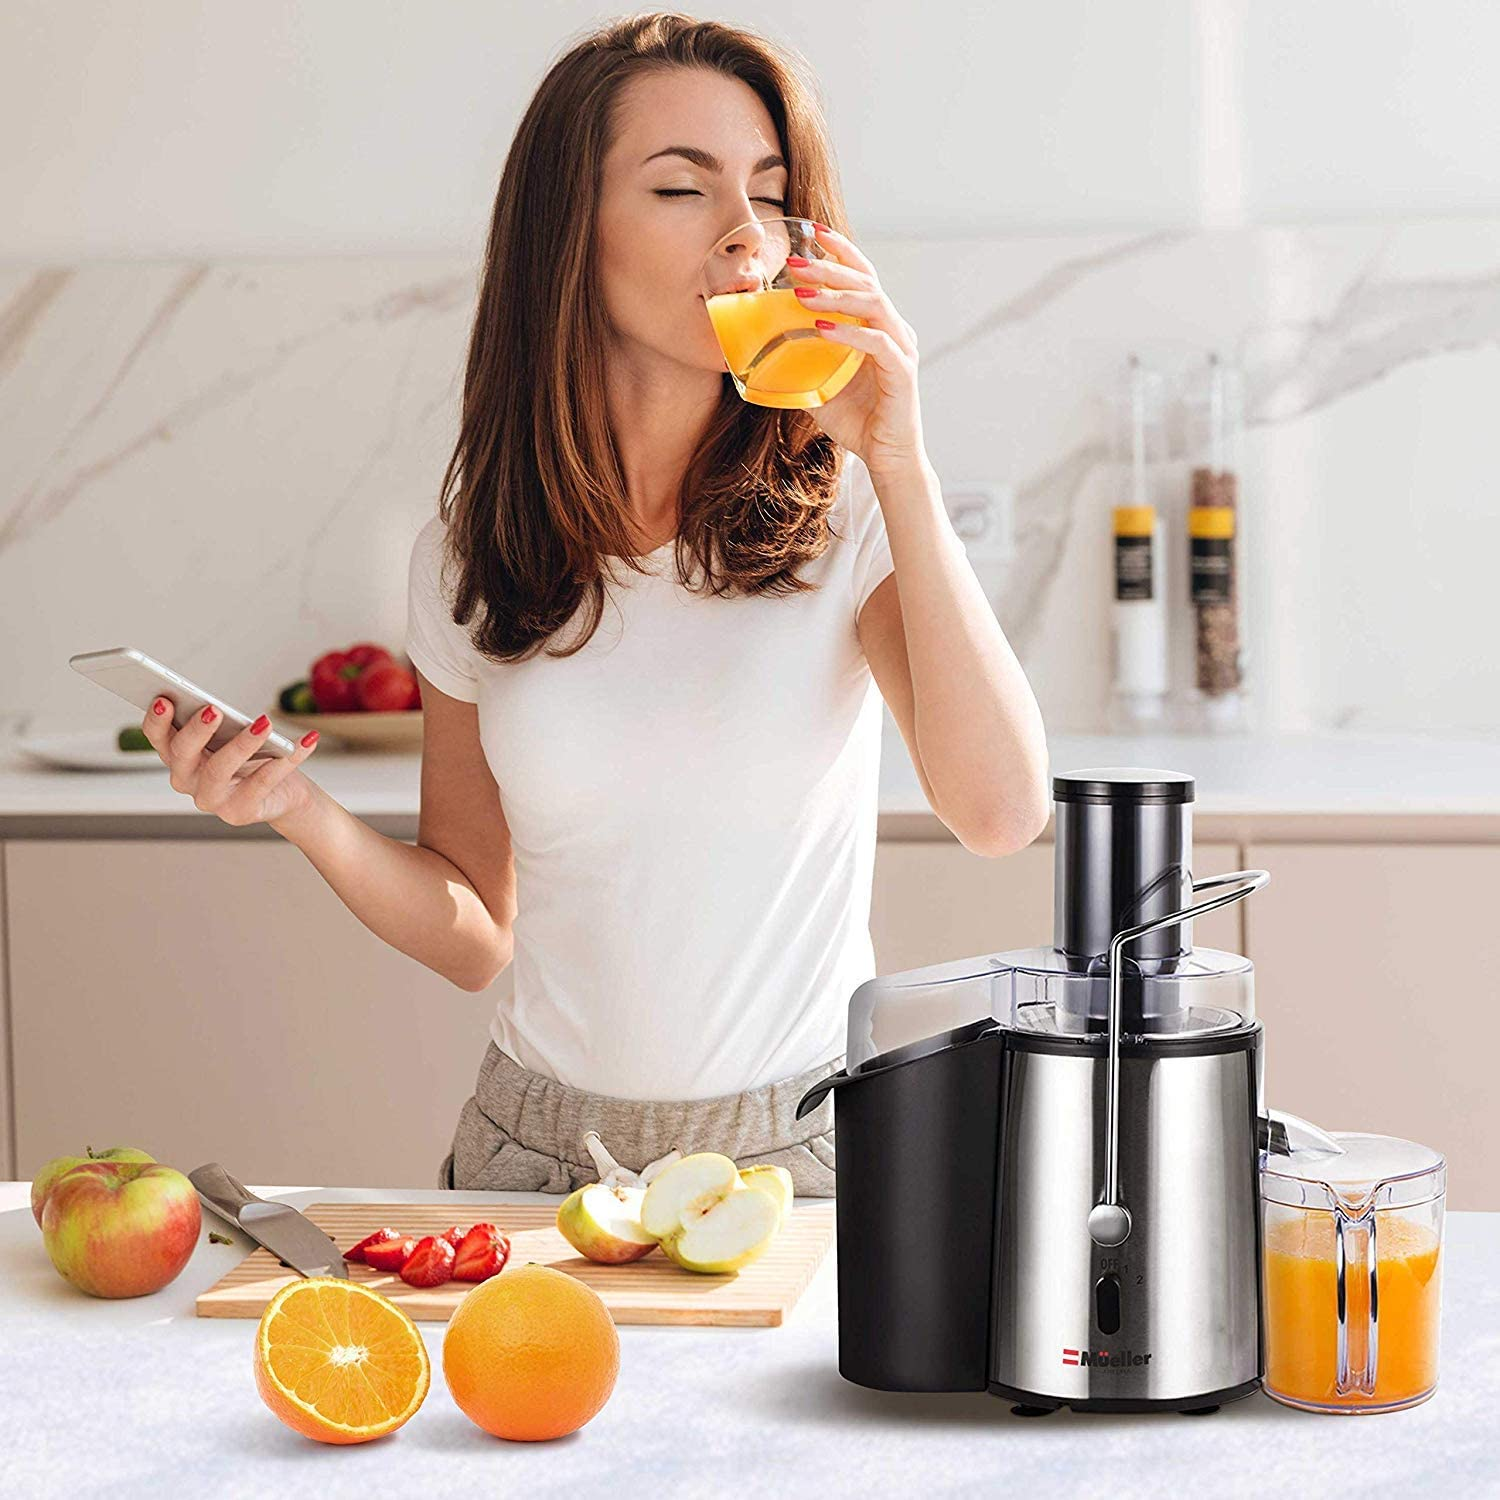 Best Juicer Under $100, Mueller Austria Juicer Ultra 1100W Power